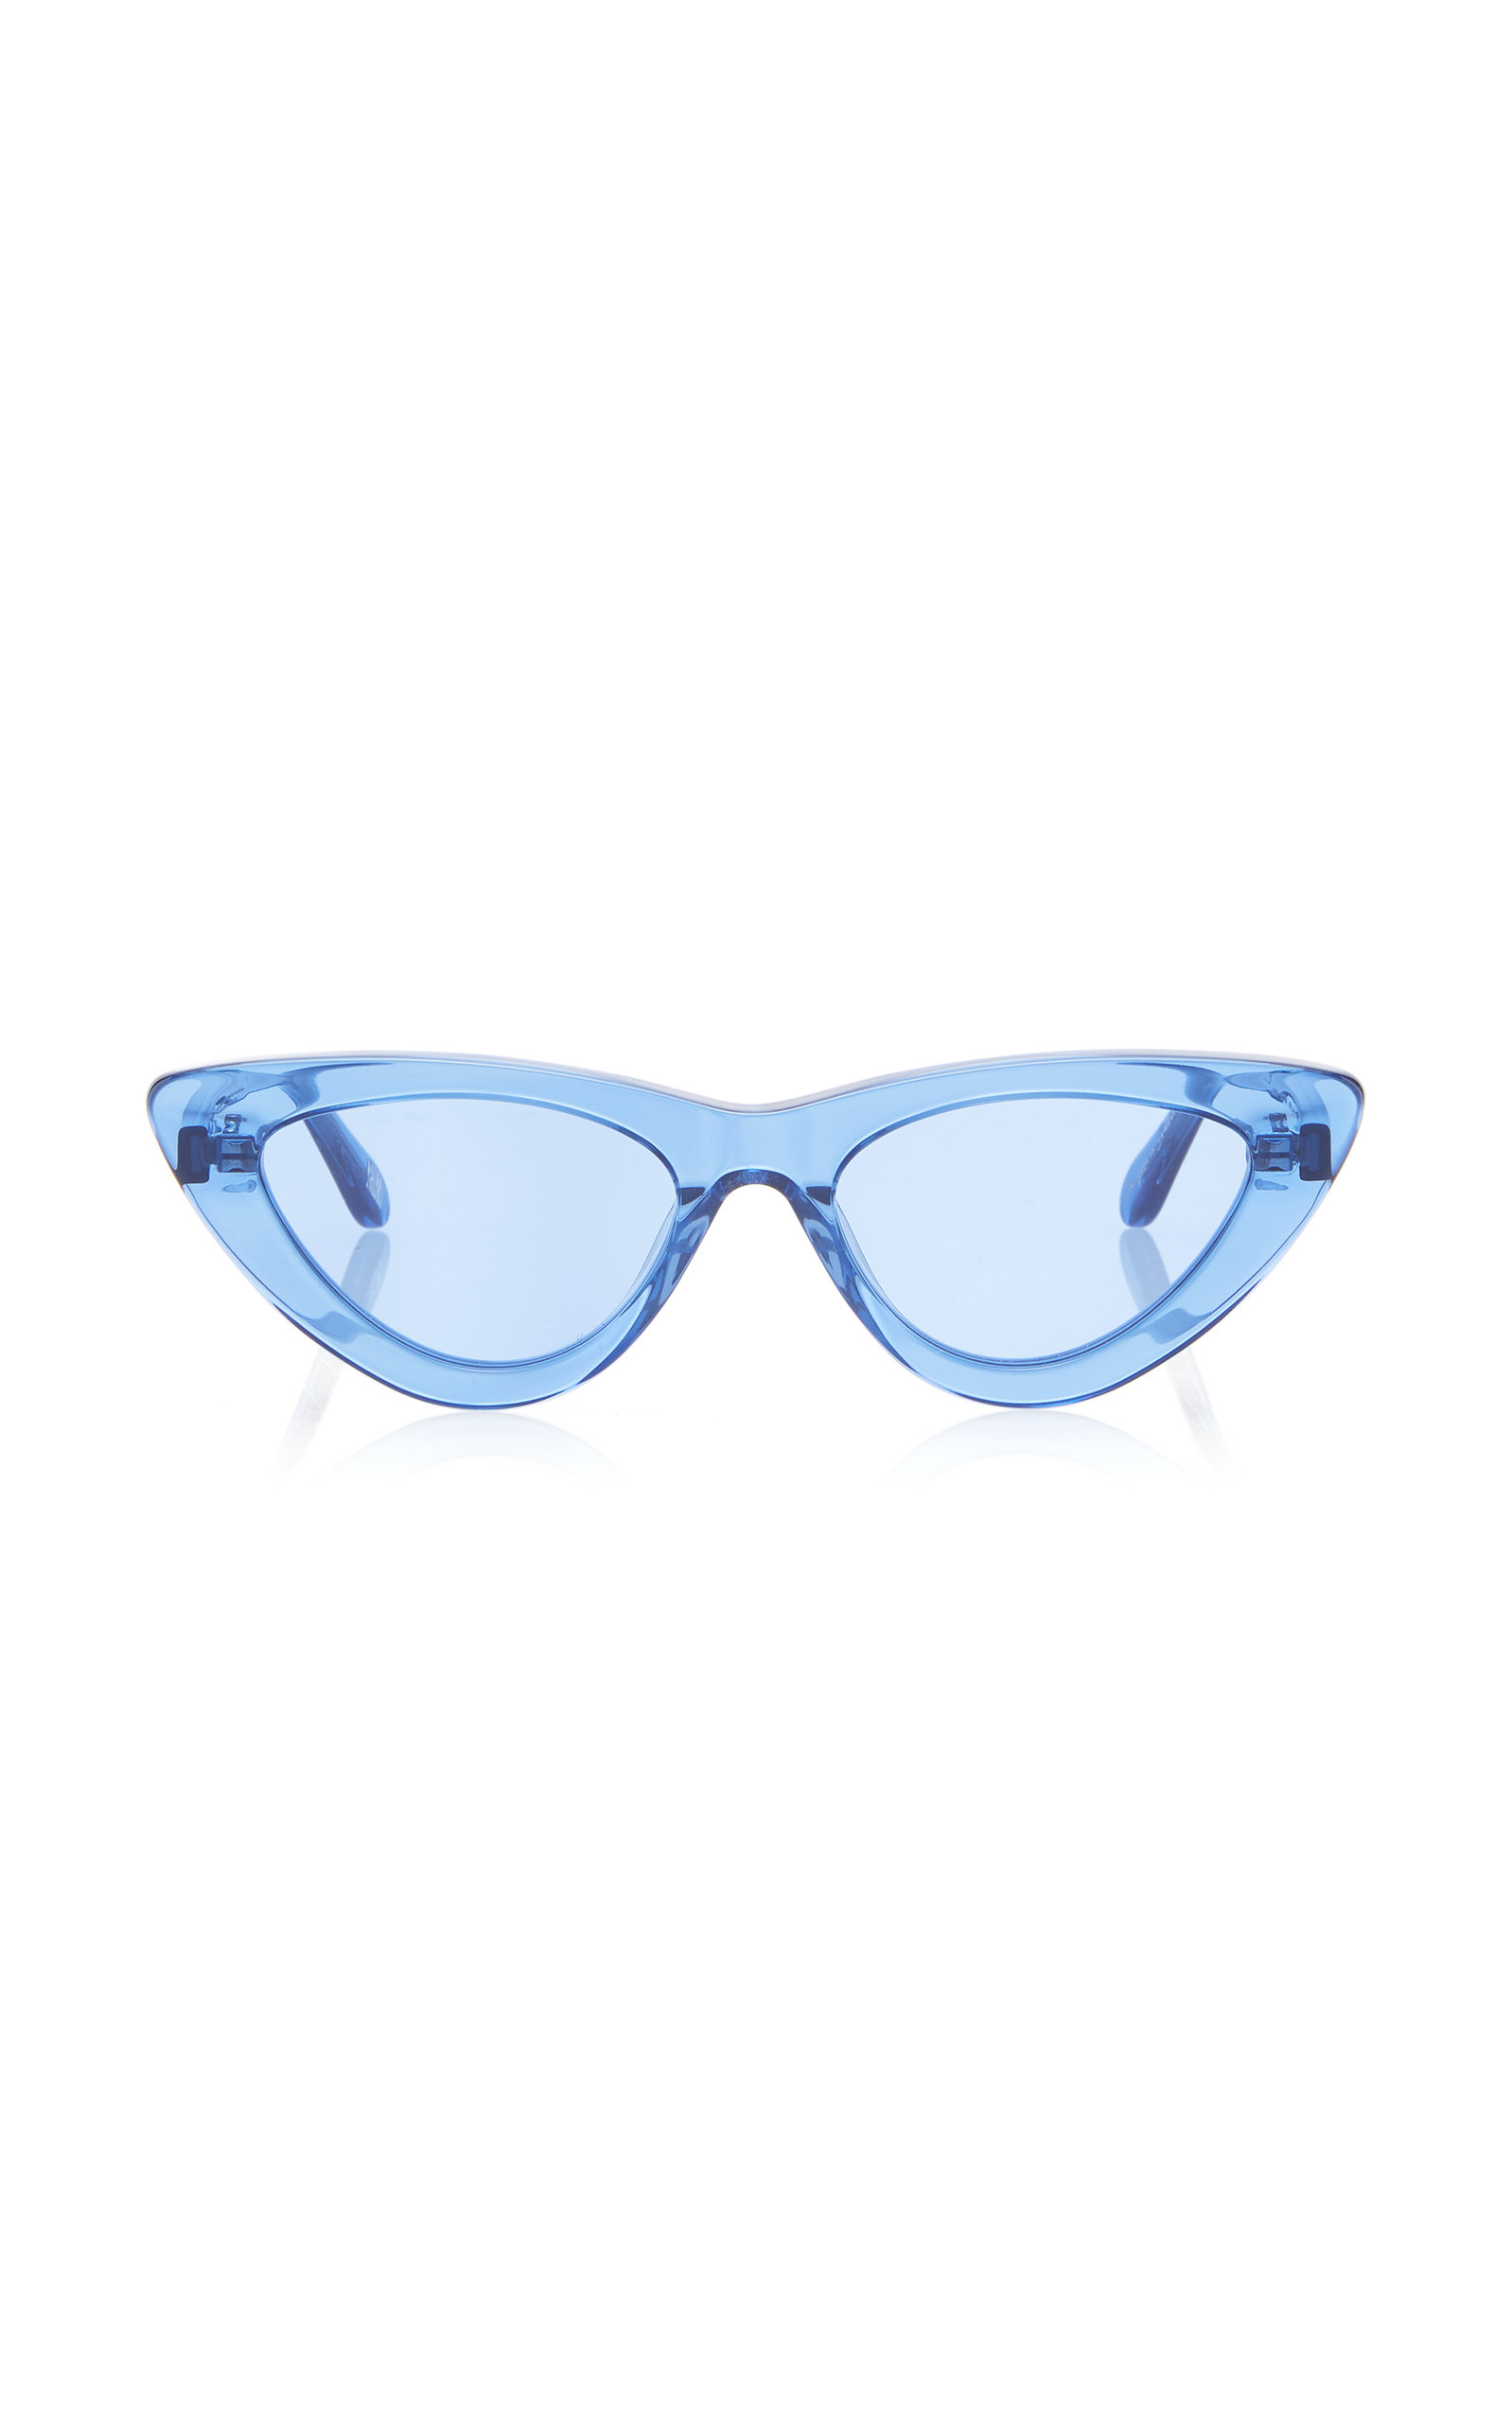 CHIMI M'O EXCLUSIVE 006 SEE THROUGH SUNGLASSES